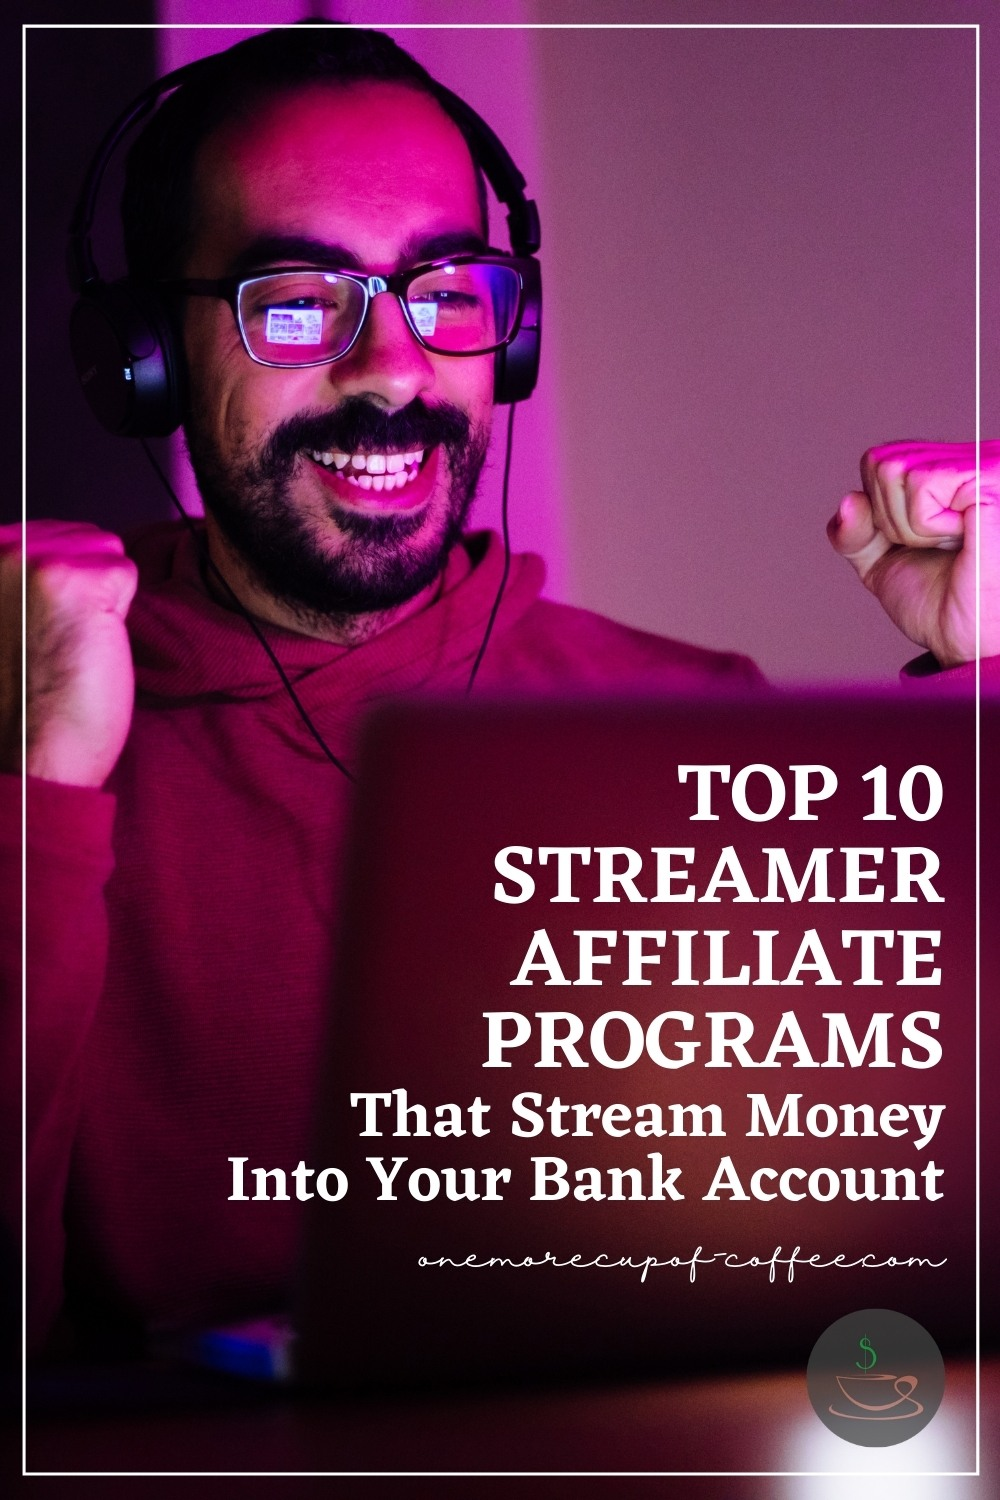 """a happy fully bearded gamer with eyeglasses on his laptop with headset on, with text overlay """"Top 10 Streamer Affiliate Programs That Stream Money Into Your Bank Account"""""""